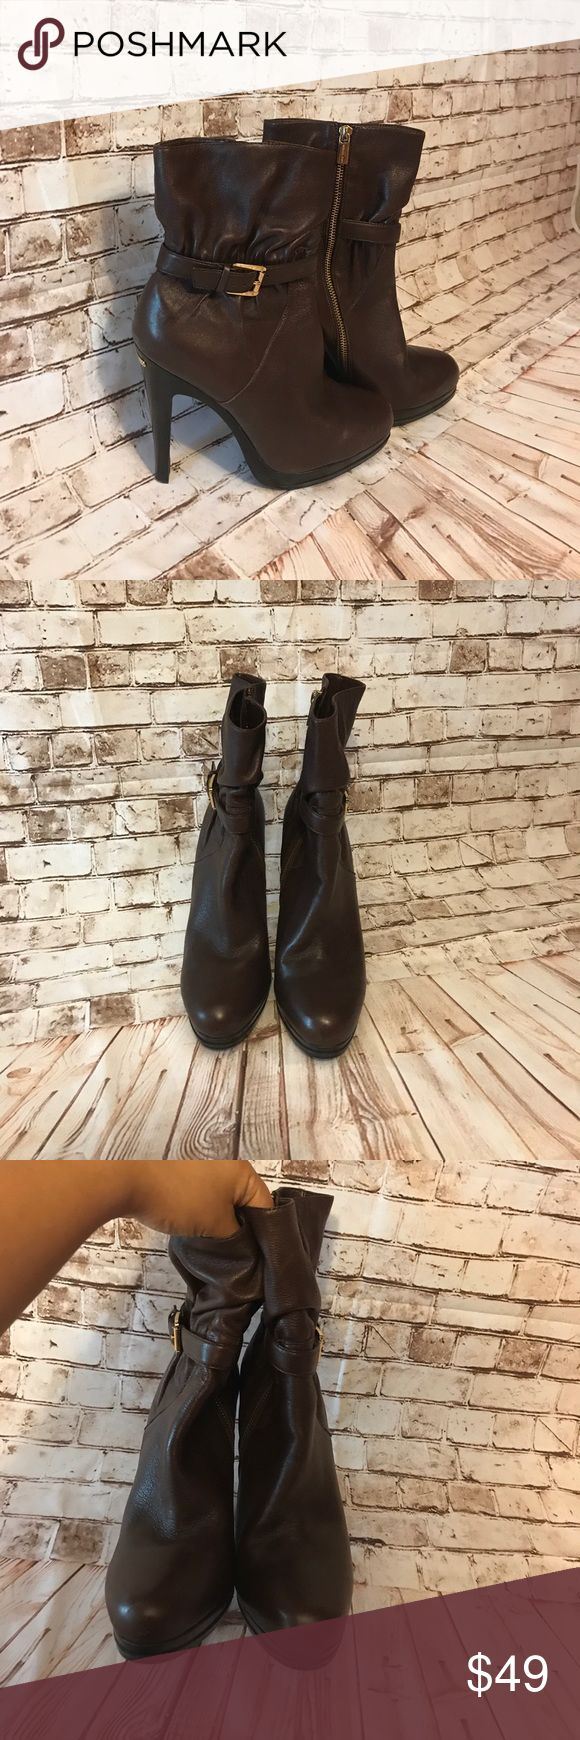 Mk boots Mk boots Michael Kors Shoes Ankle Boots & Booties